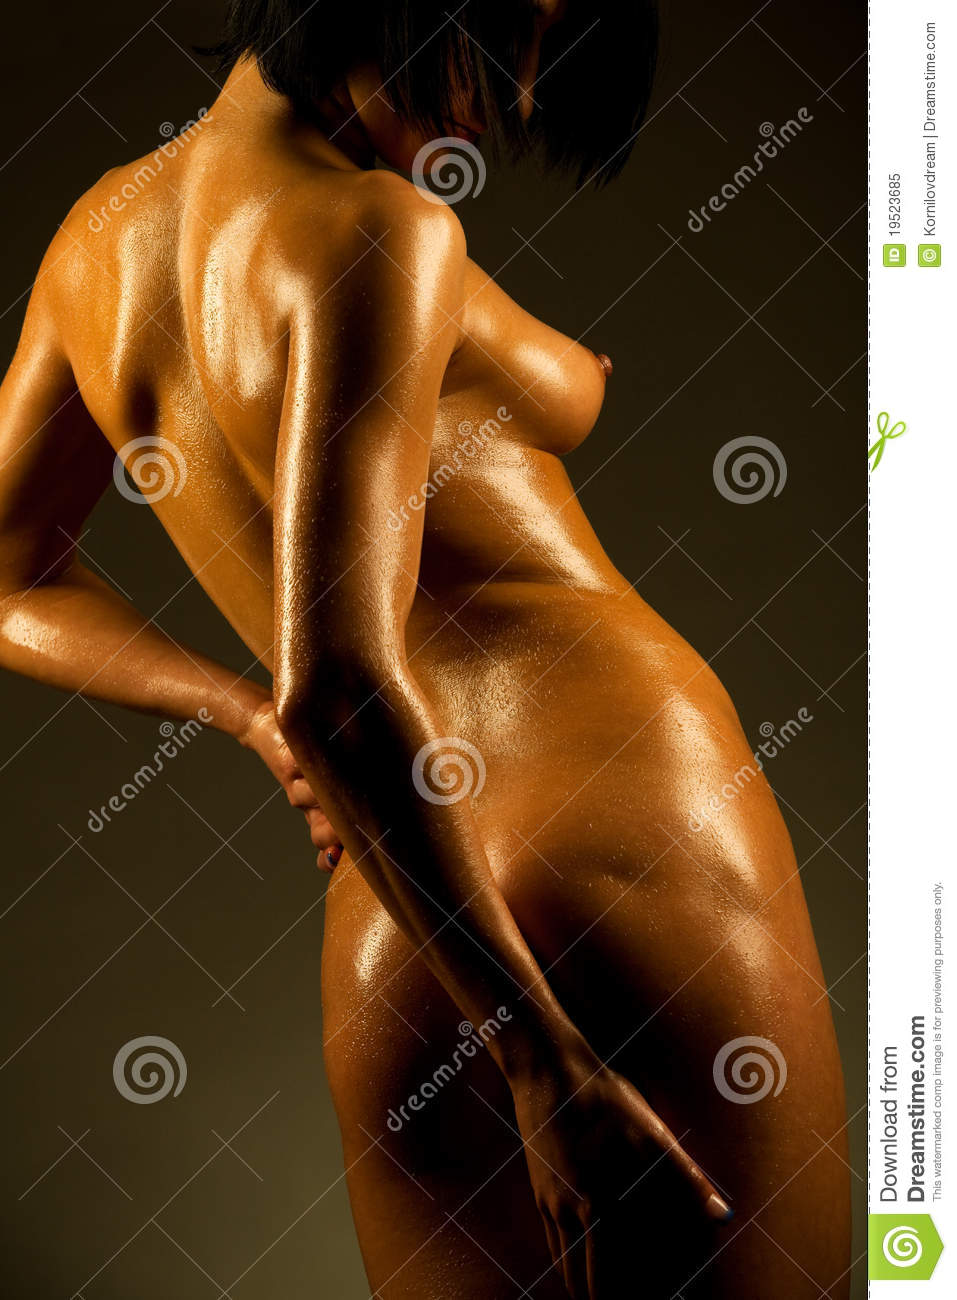 pictures of men naked covered in oil